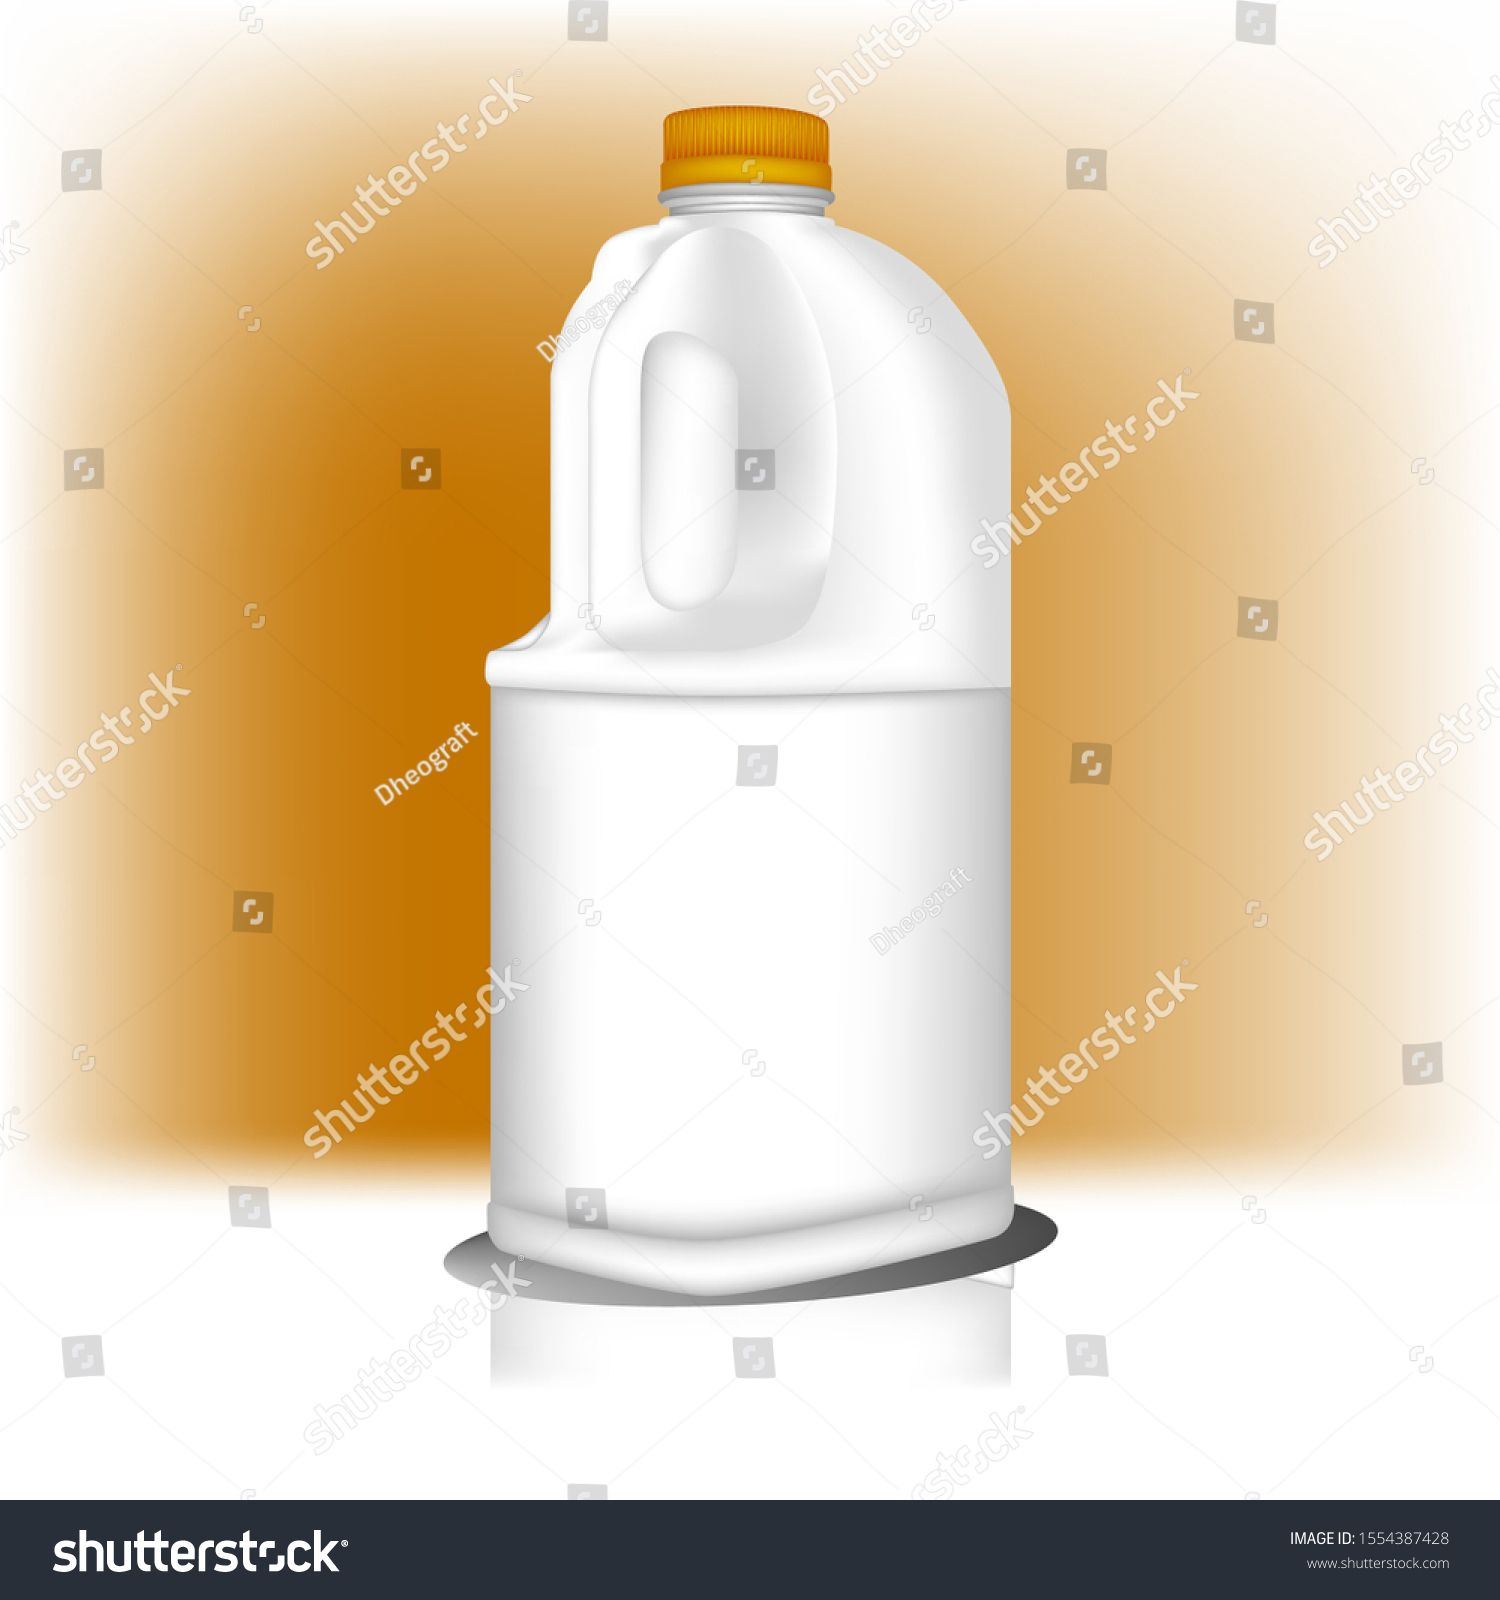 Realistic plastic jug bottle with yellow cap can be used for all product. Jug Bottle mockup. Vector illustration #plasticjugs